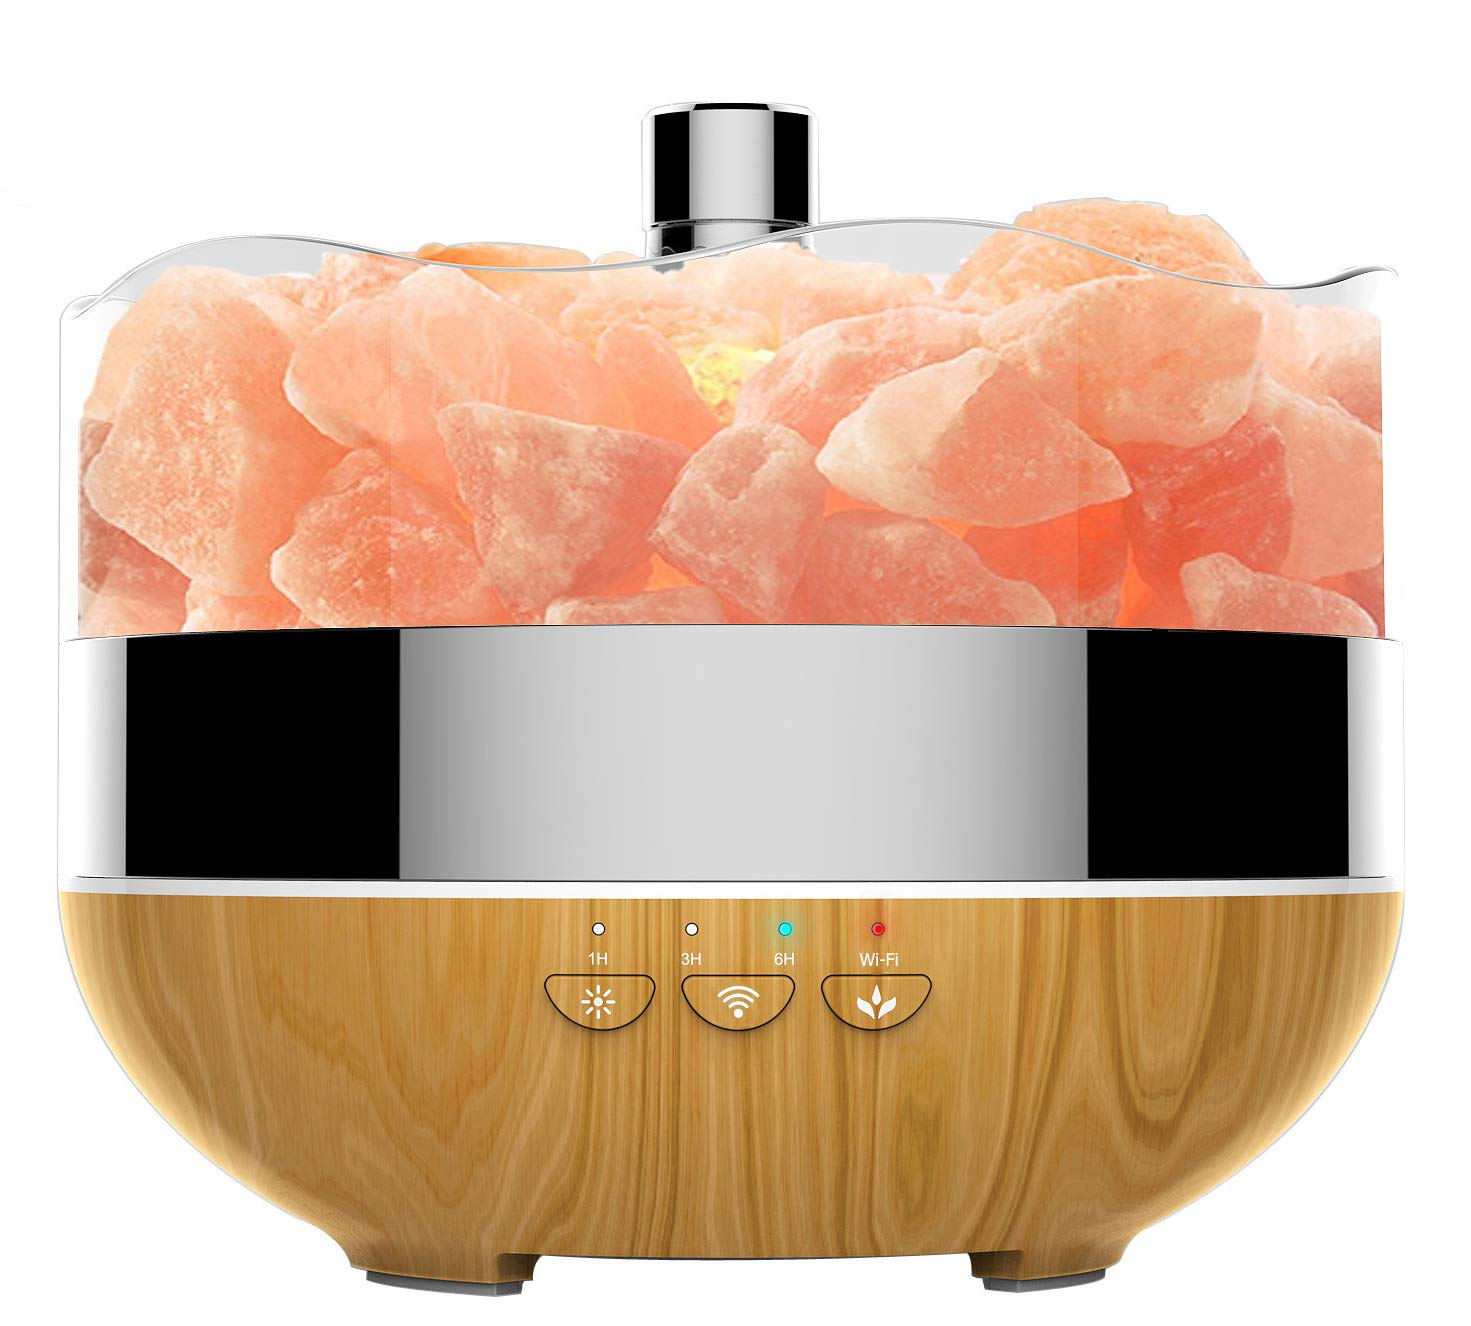 Smart WiFi Essential Oil Diffuser - 400ml Ultrasonic Aromatherapy Diffuser Oil Diffuser Cool Mist Humidifier Salt Lamp Works w/ Alexa Echo Google Home for Home Office Yoga (Salt Rocks Sold Separately)